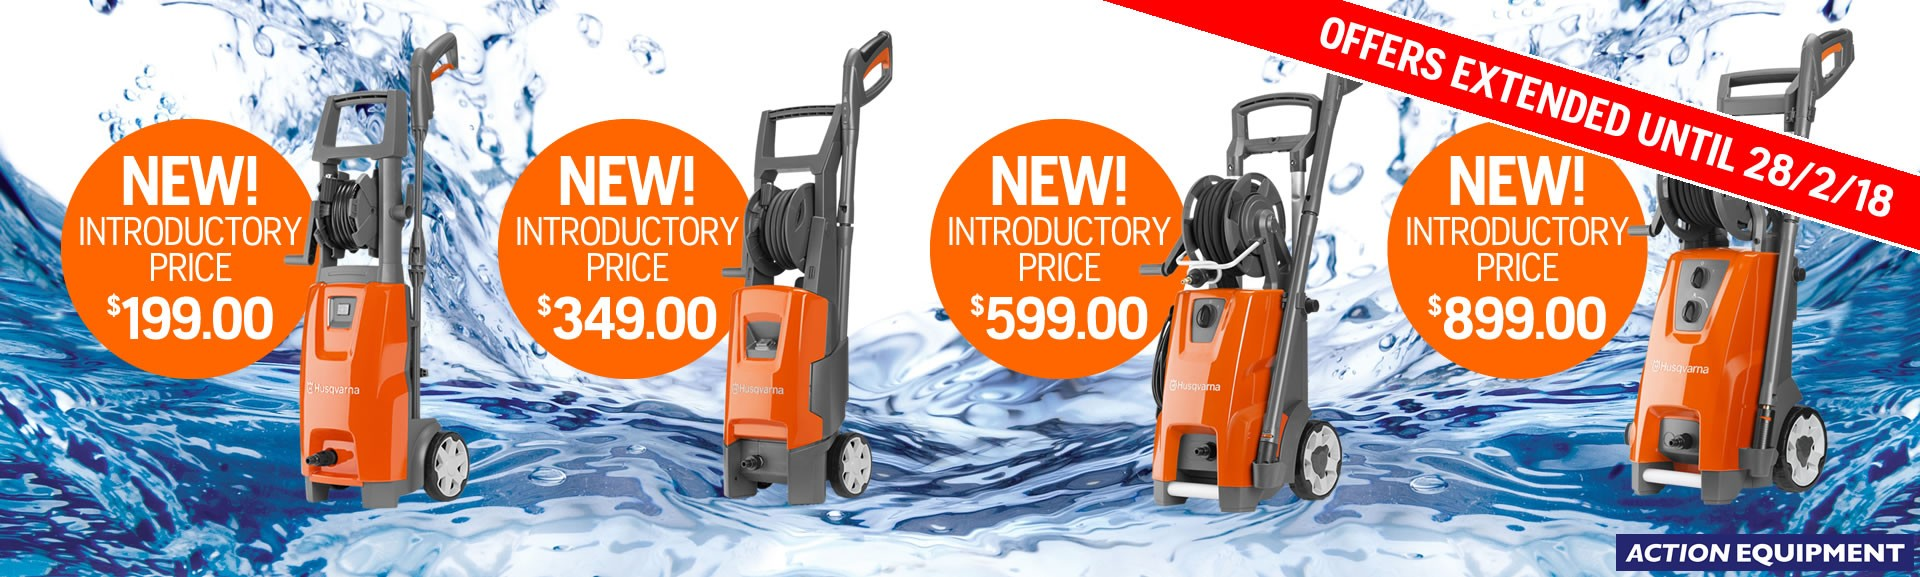 NEW! Electric pressure washers from Husqvarna